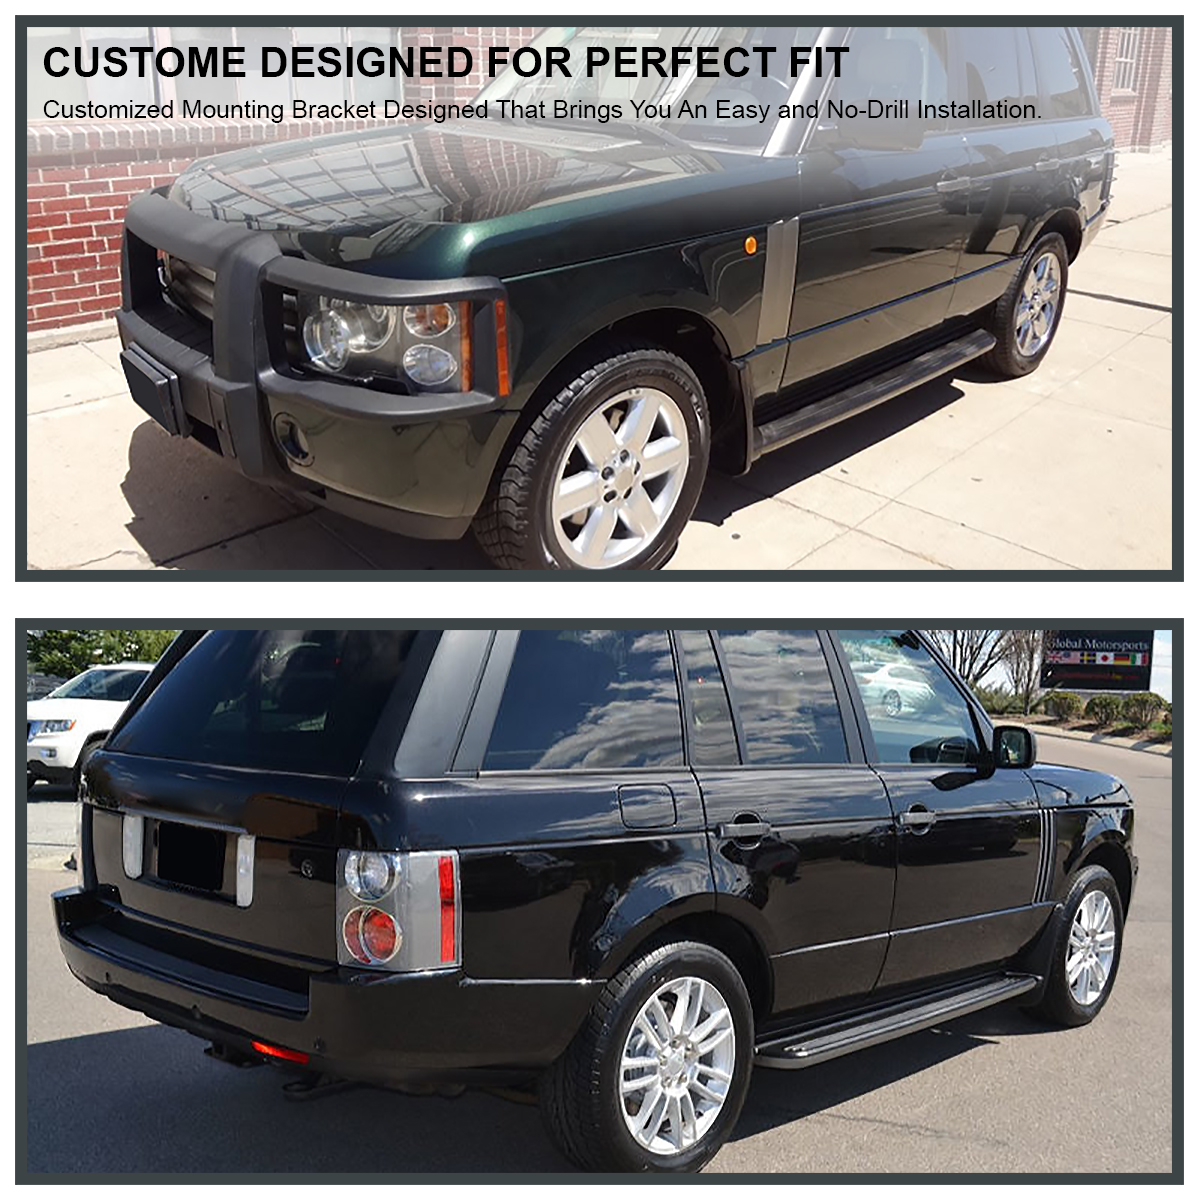 Sell Used 2006 Land Rover Range Rover Sport Hse Sport: 2003-2012 Land Rover Range Rover HSE Sport Aluminum